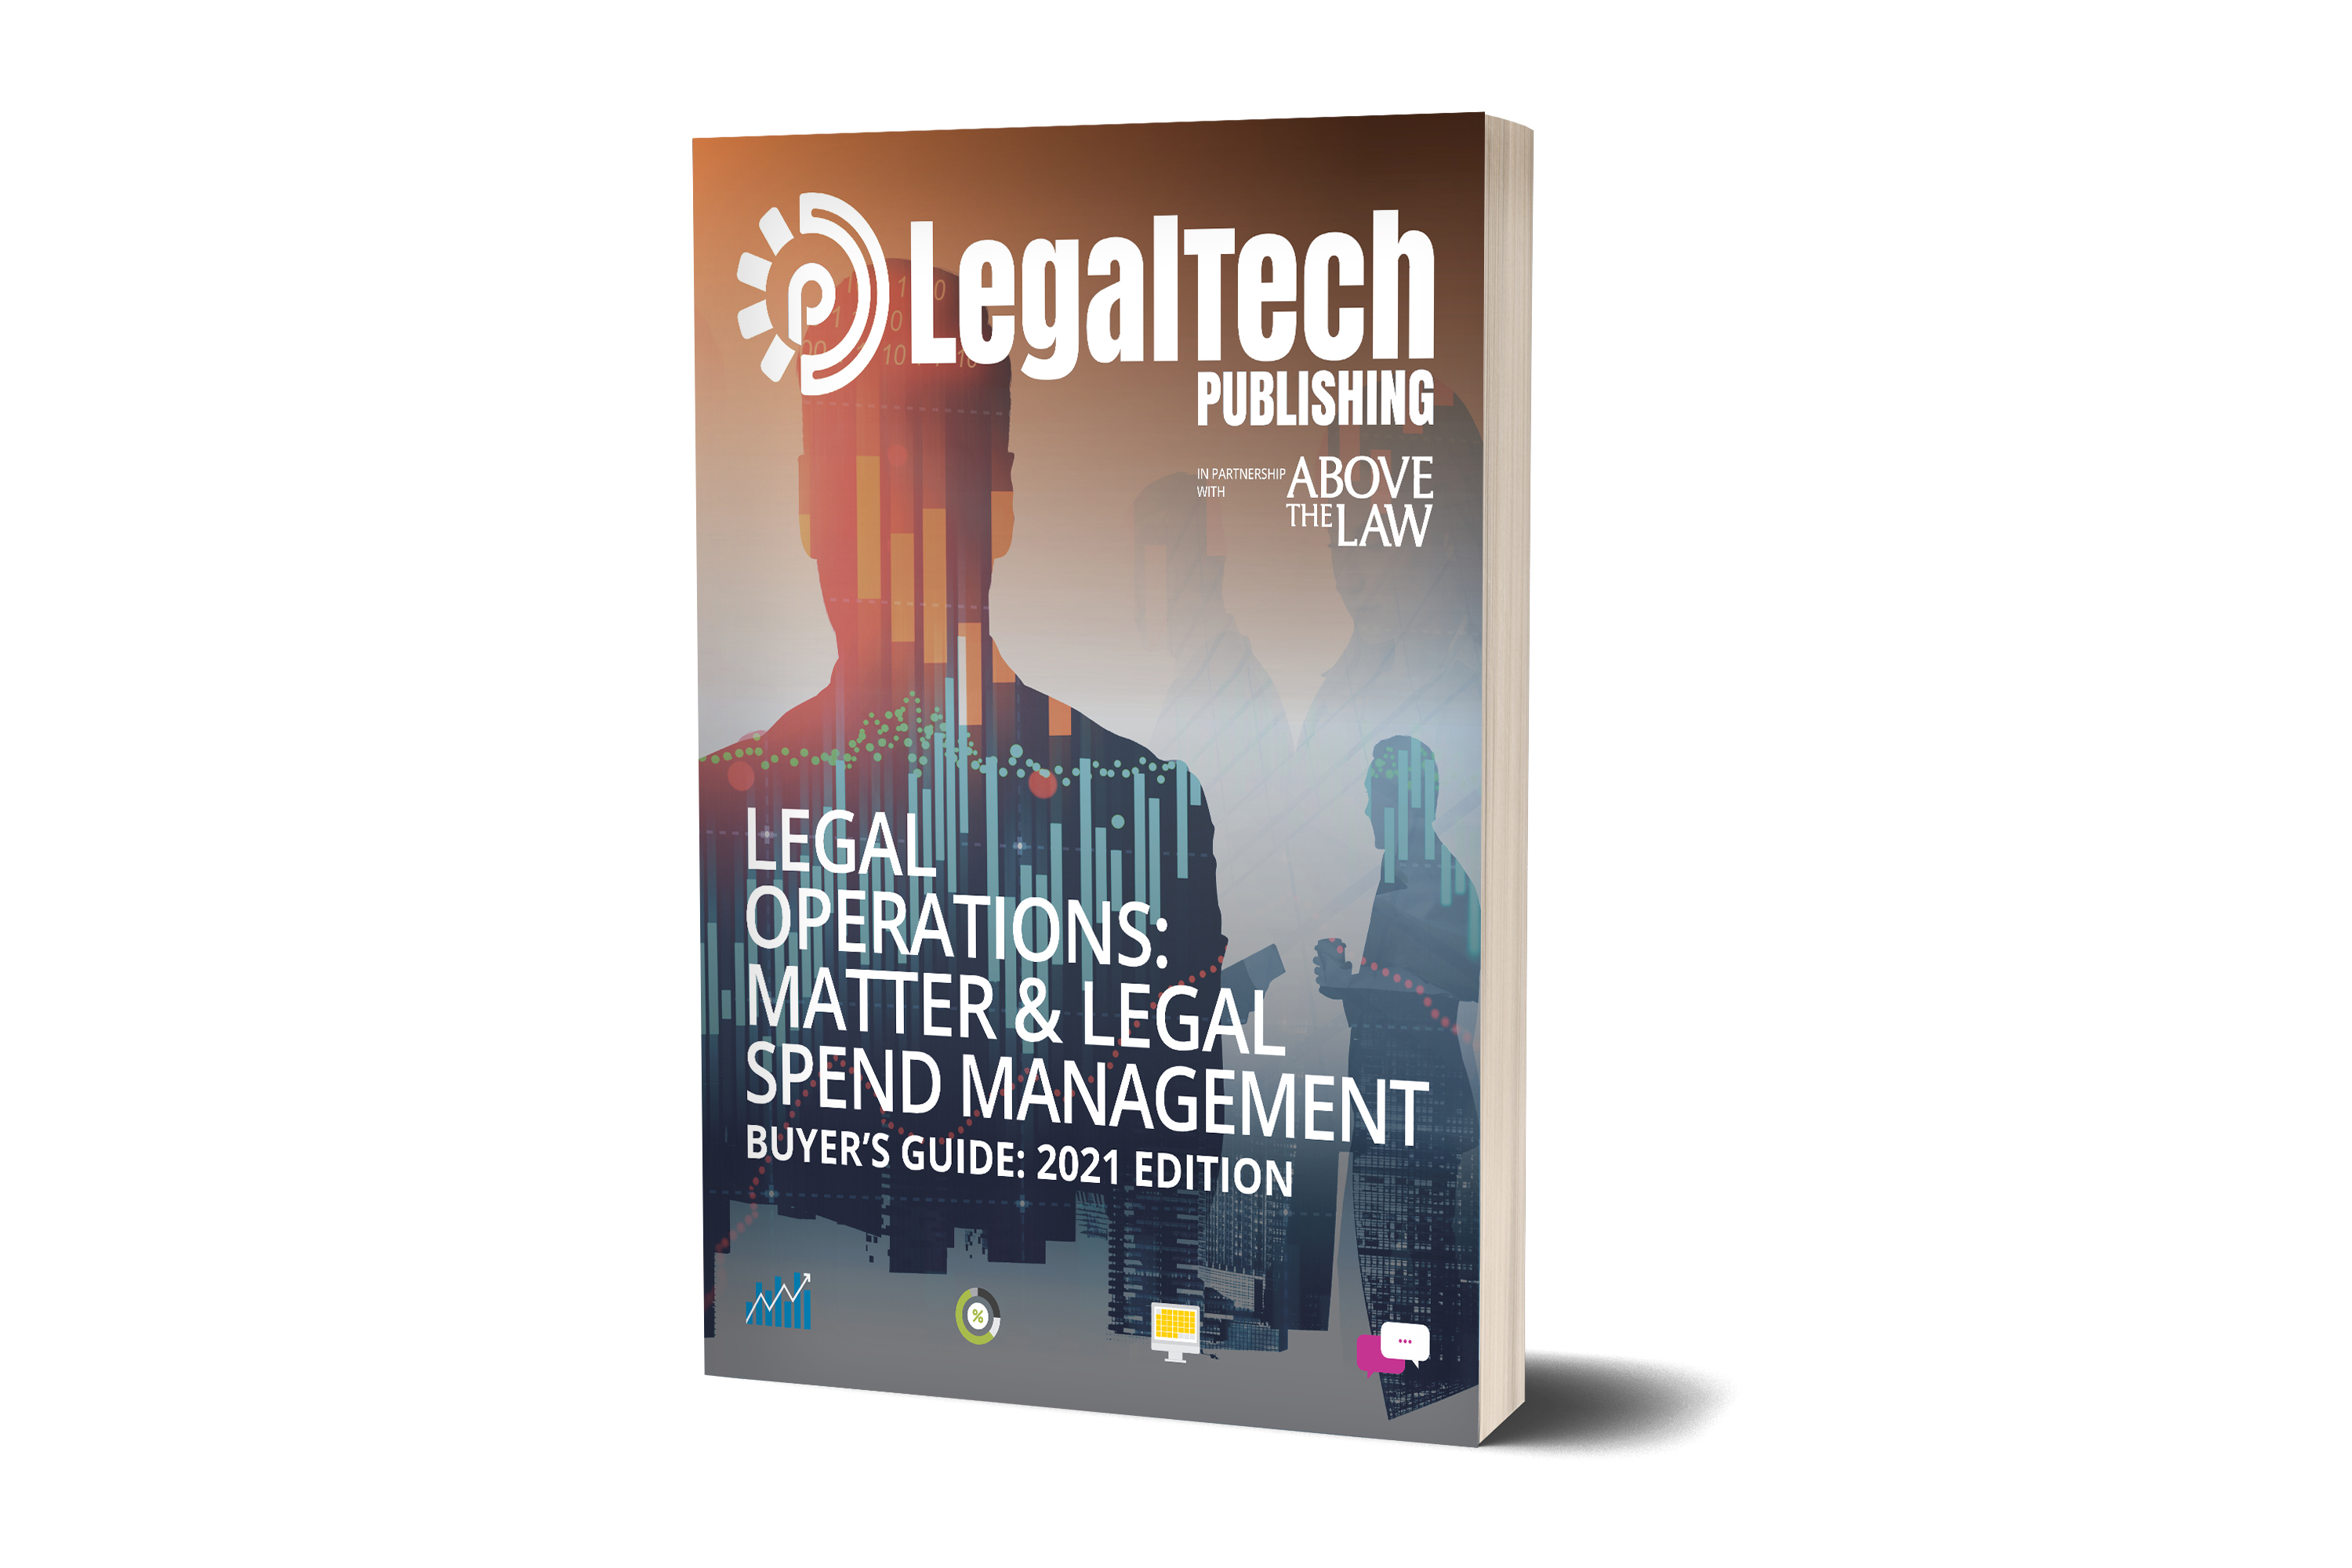 Legal-Ops-Spend-Buyers-Guide-2021-Cover-Standing